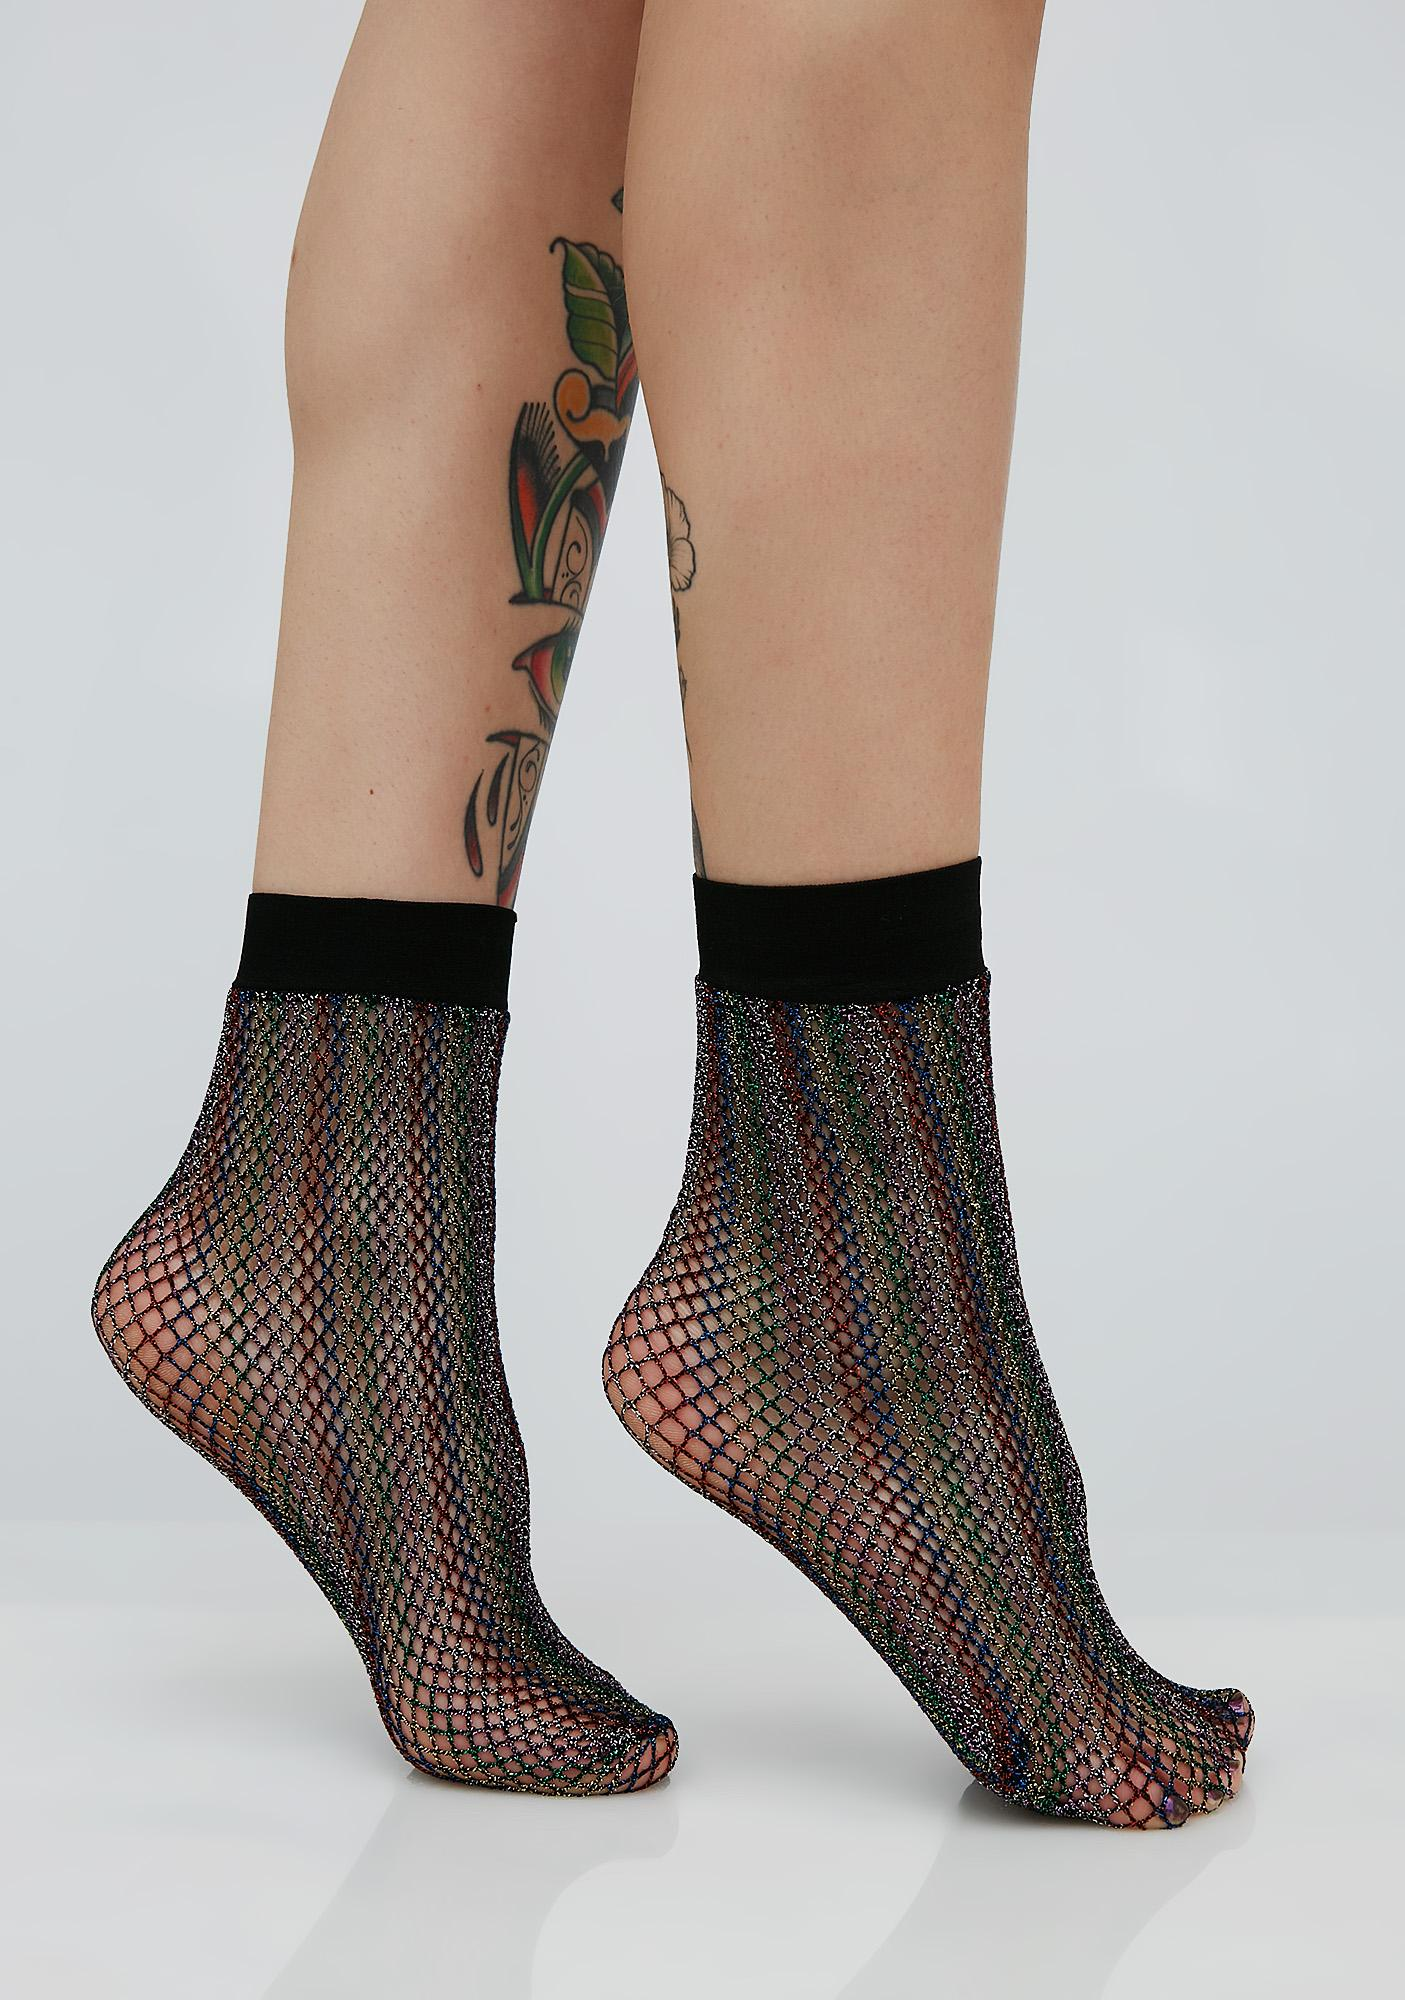 Catch A Rainbow Ankle Socks